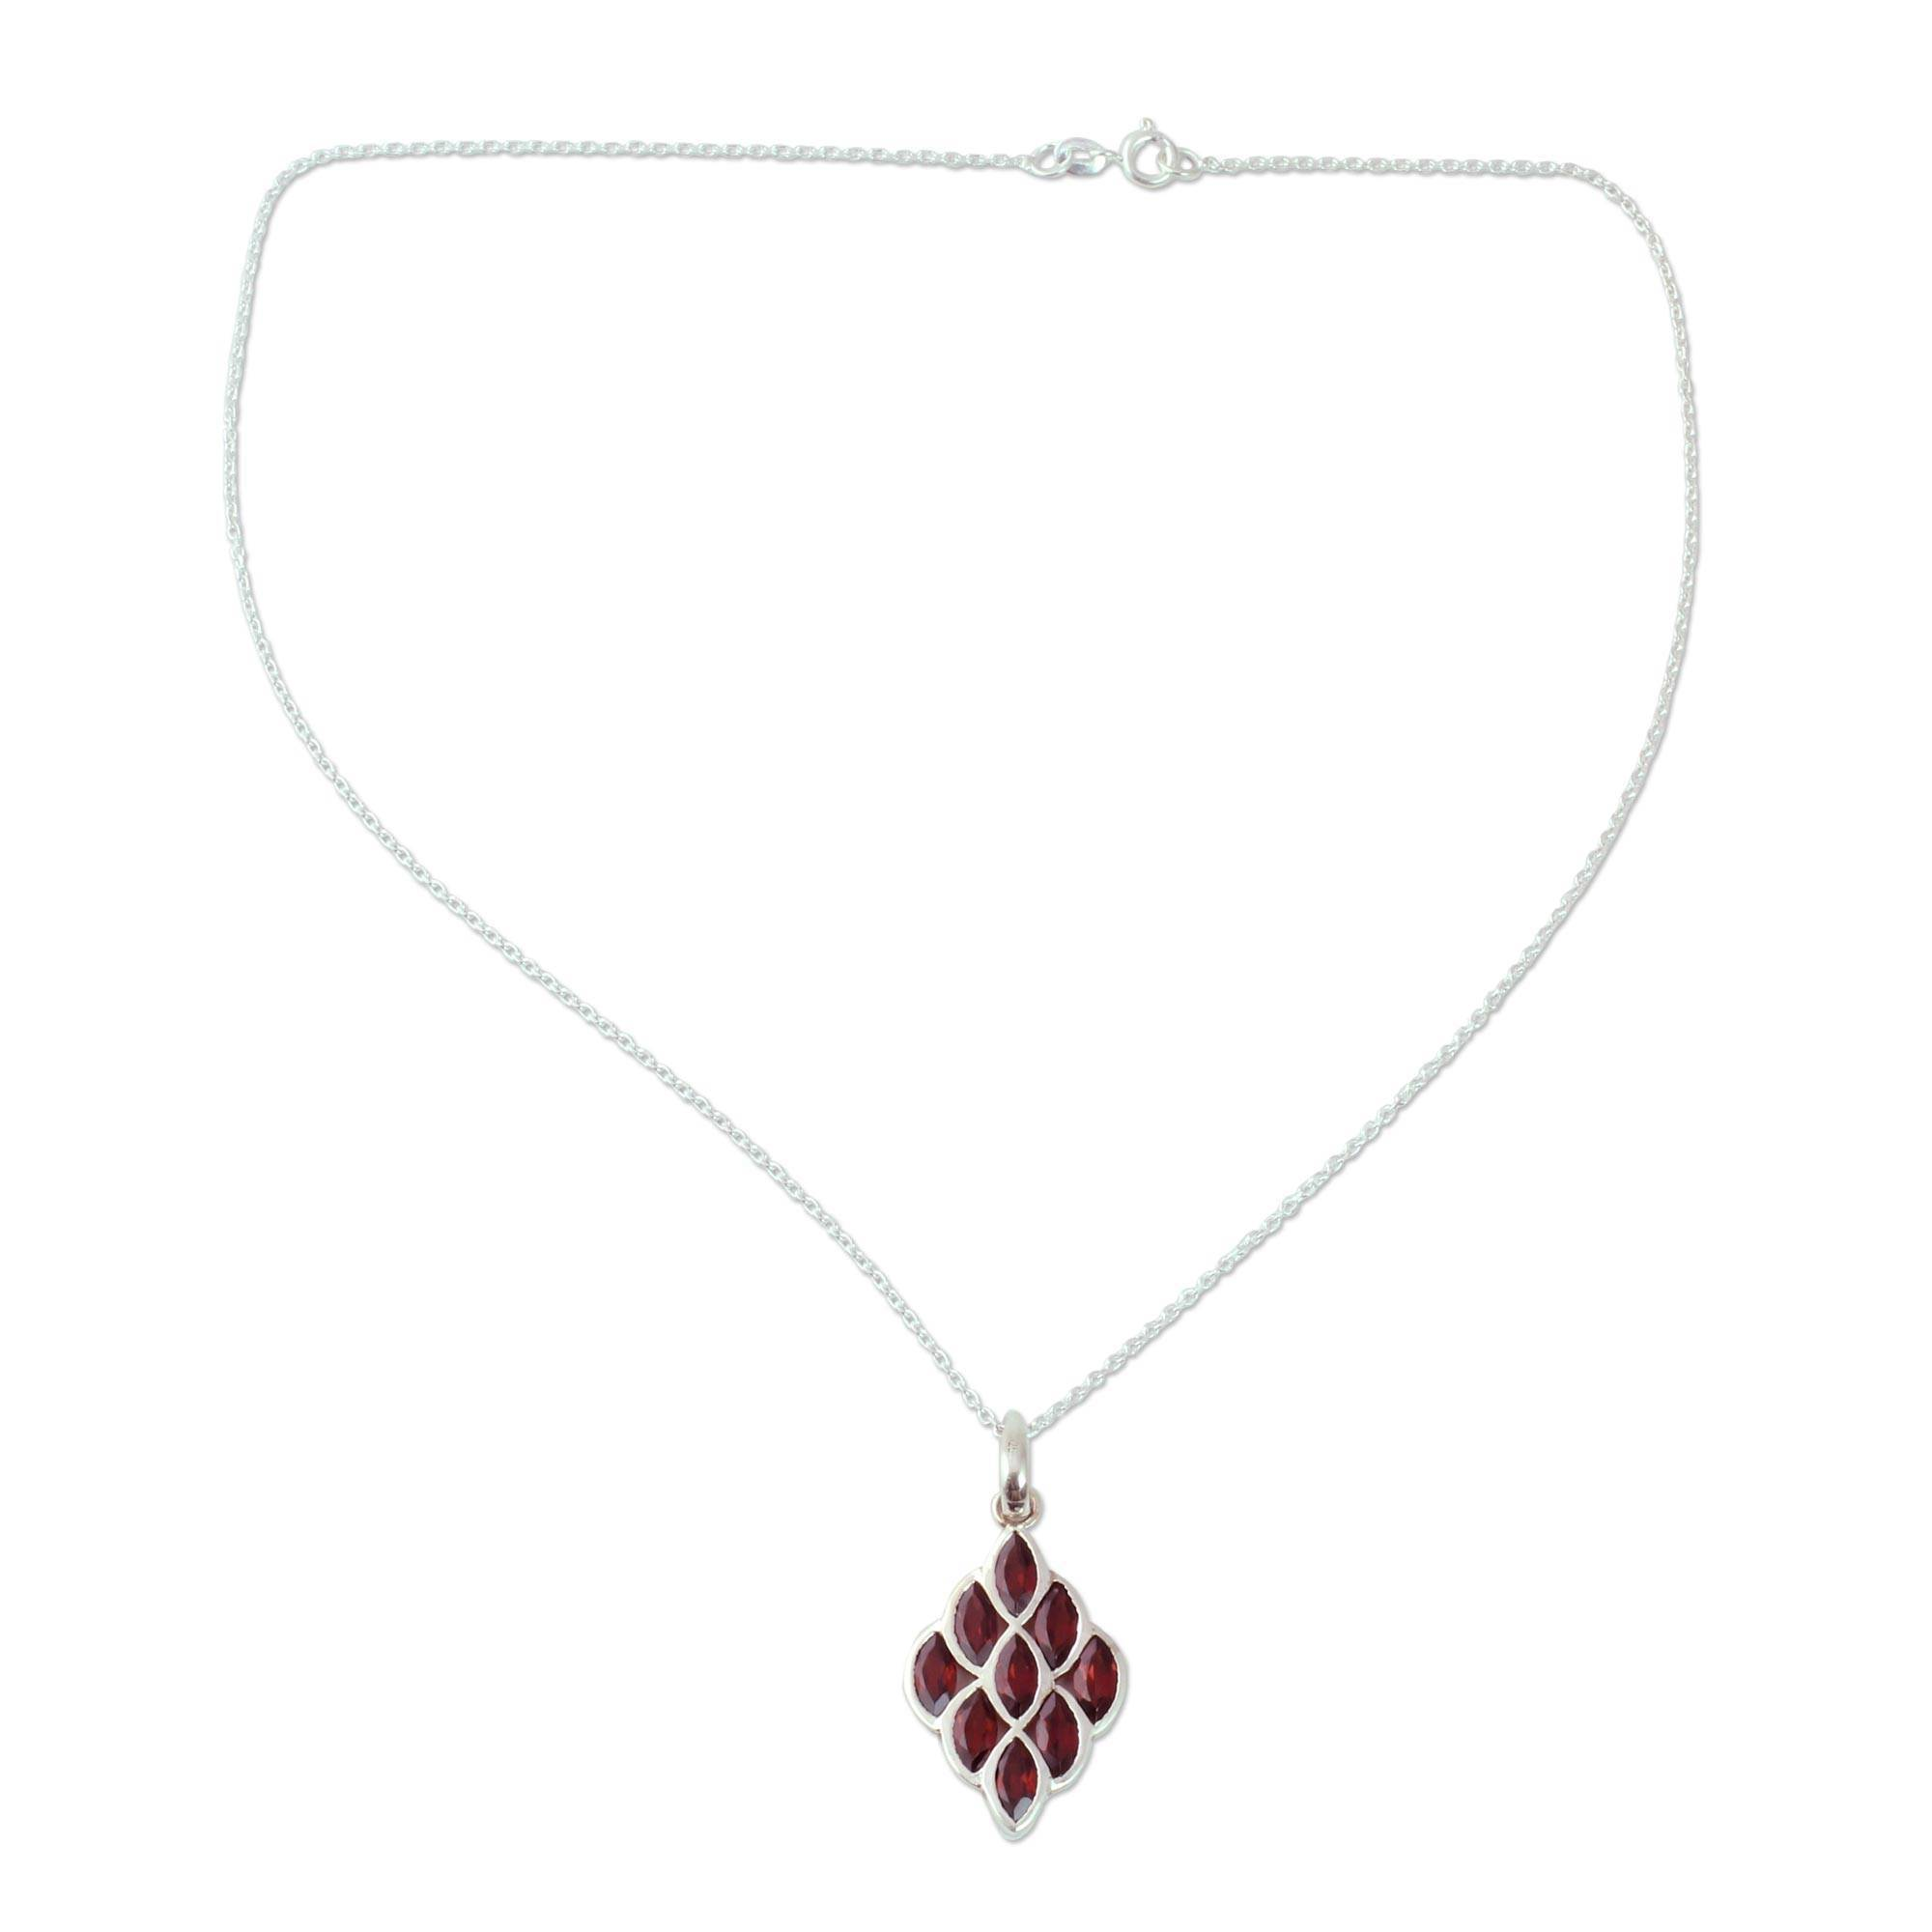 drop necklace plated products with garnet nckvypbg store garnets pendant pomegranate the gold getty